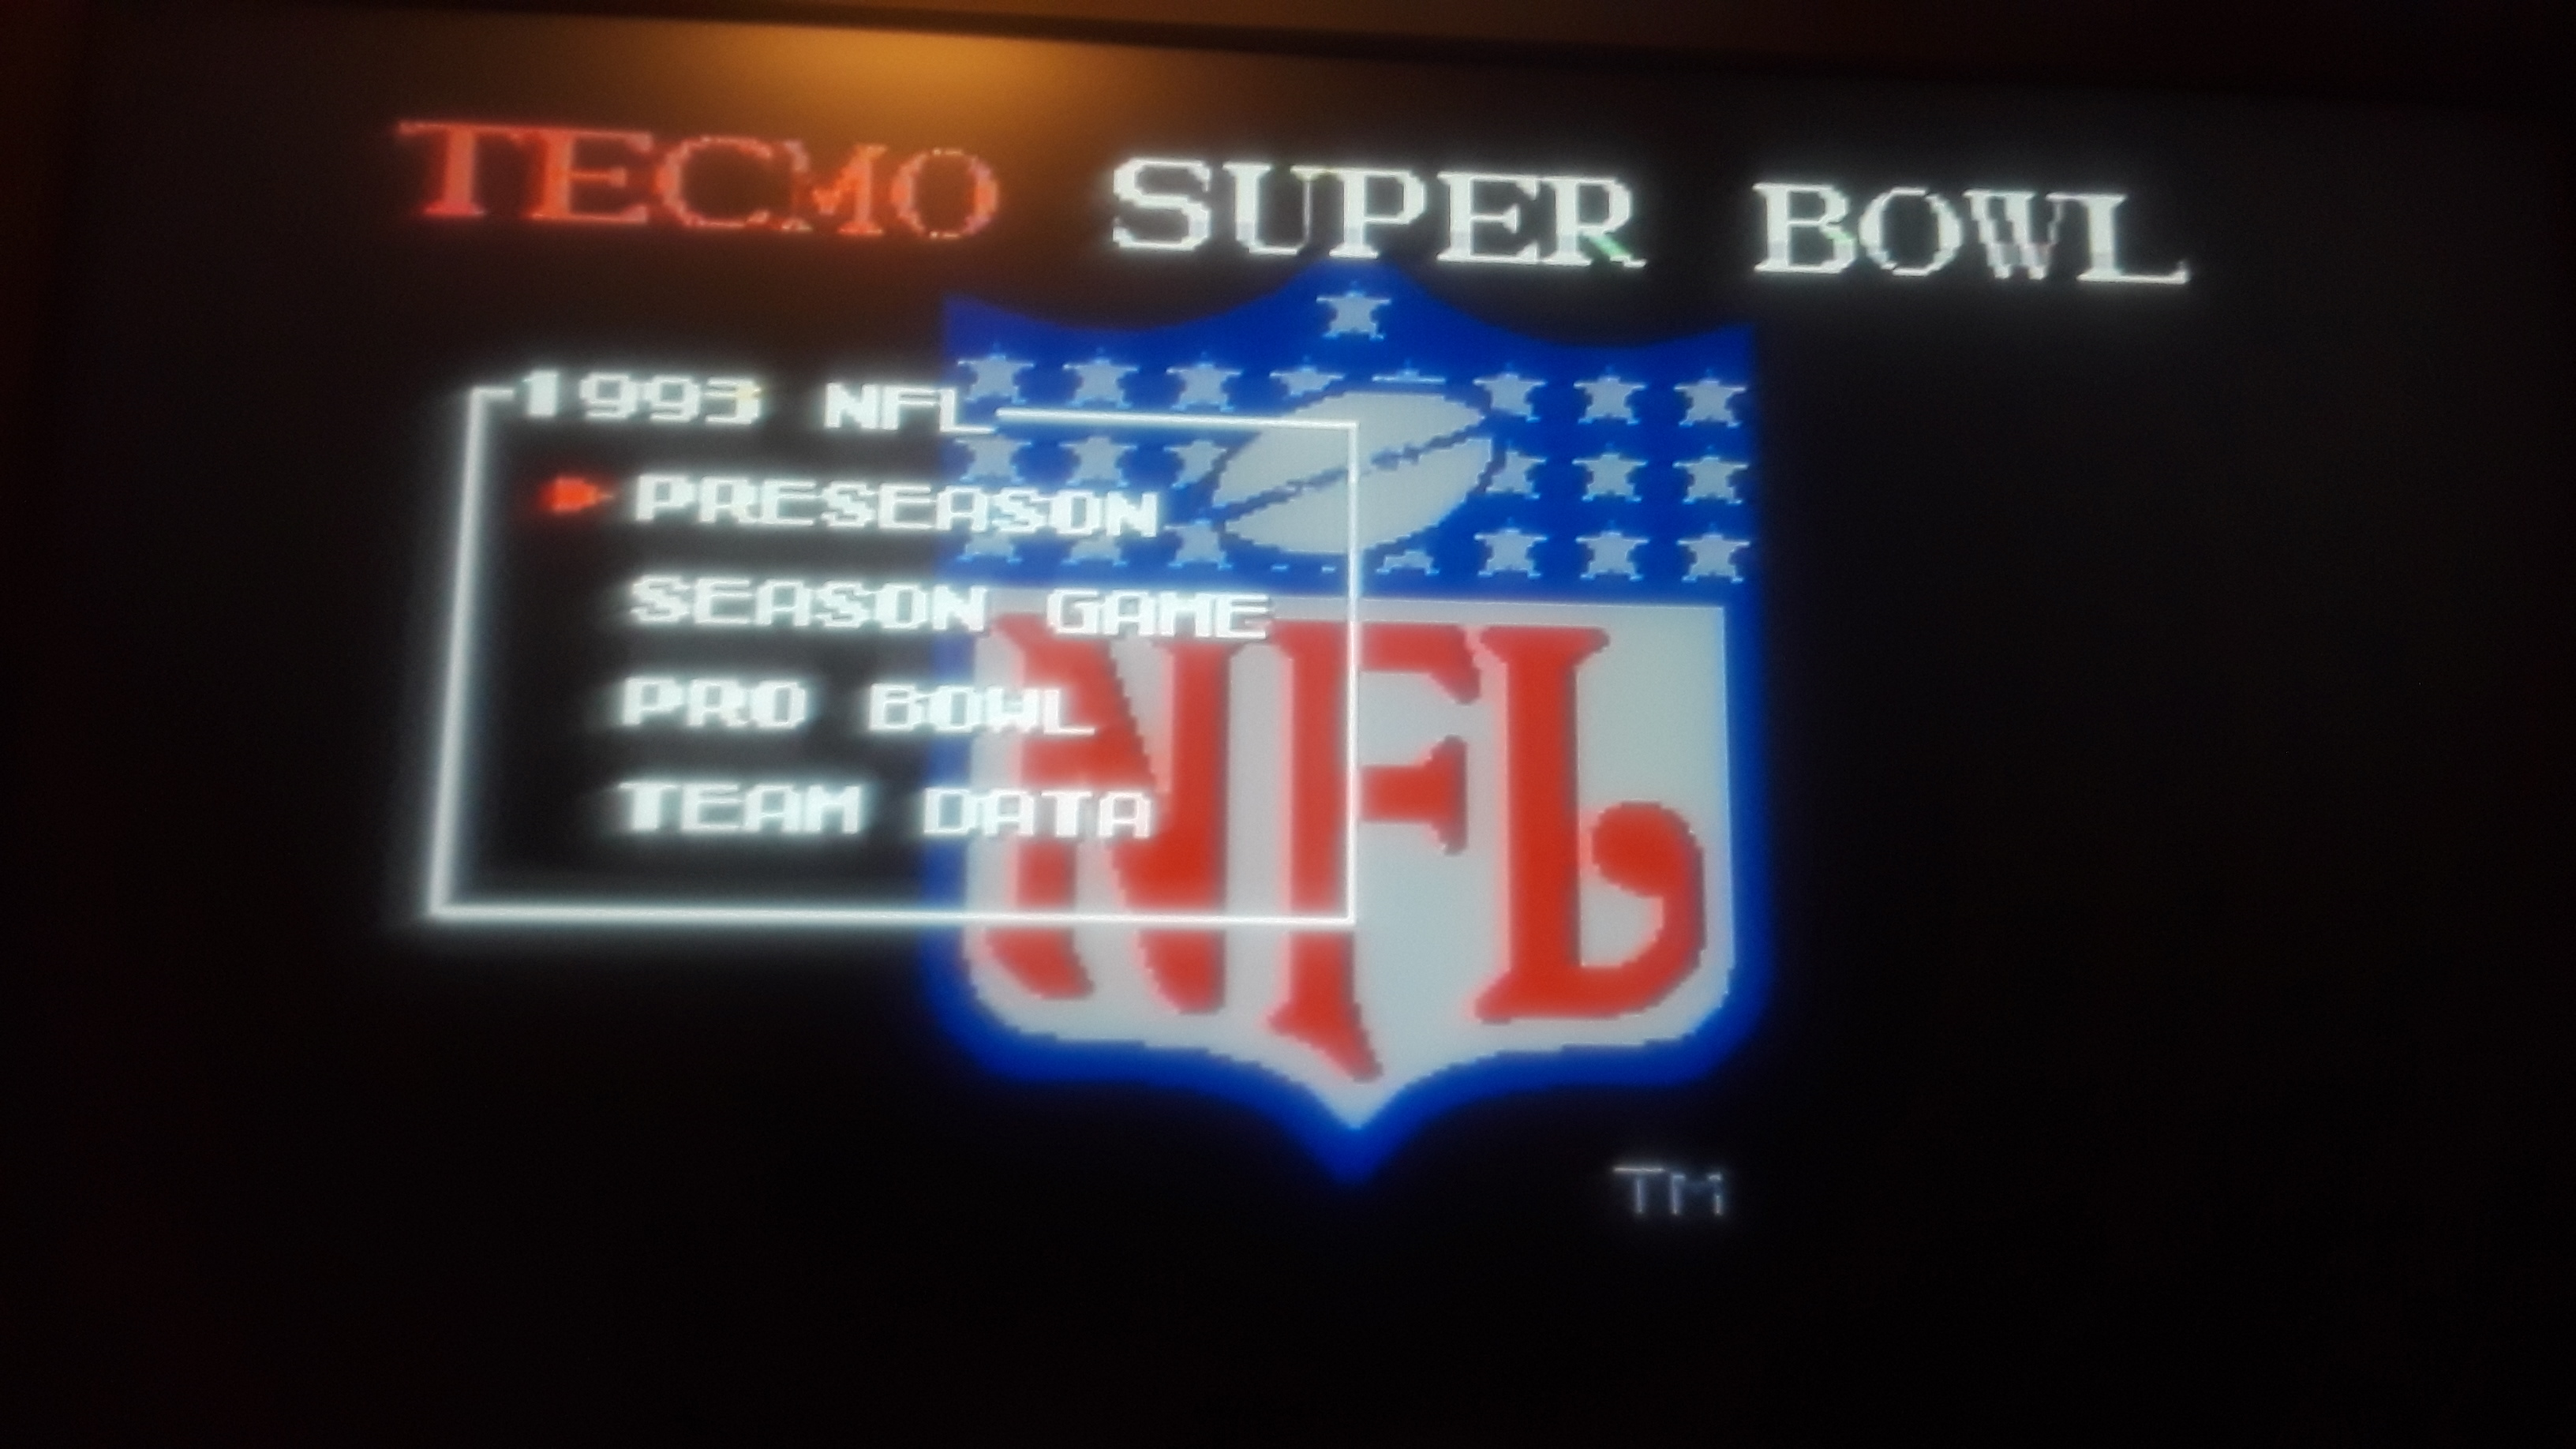 Tecmo Super Bowl [Most Receiving Yards] [Preseason game] 627 points